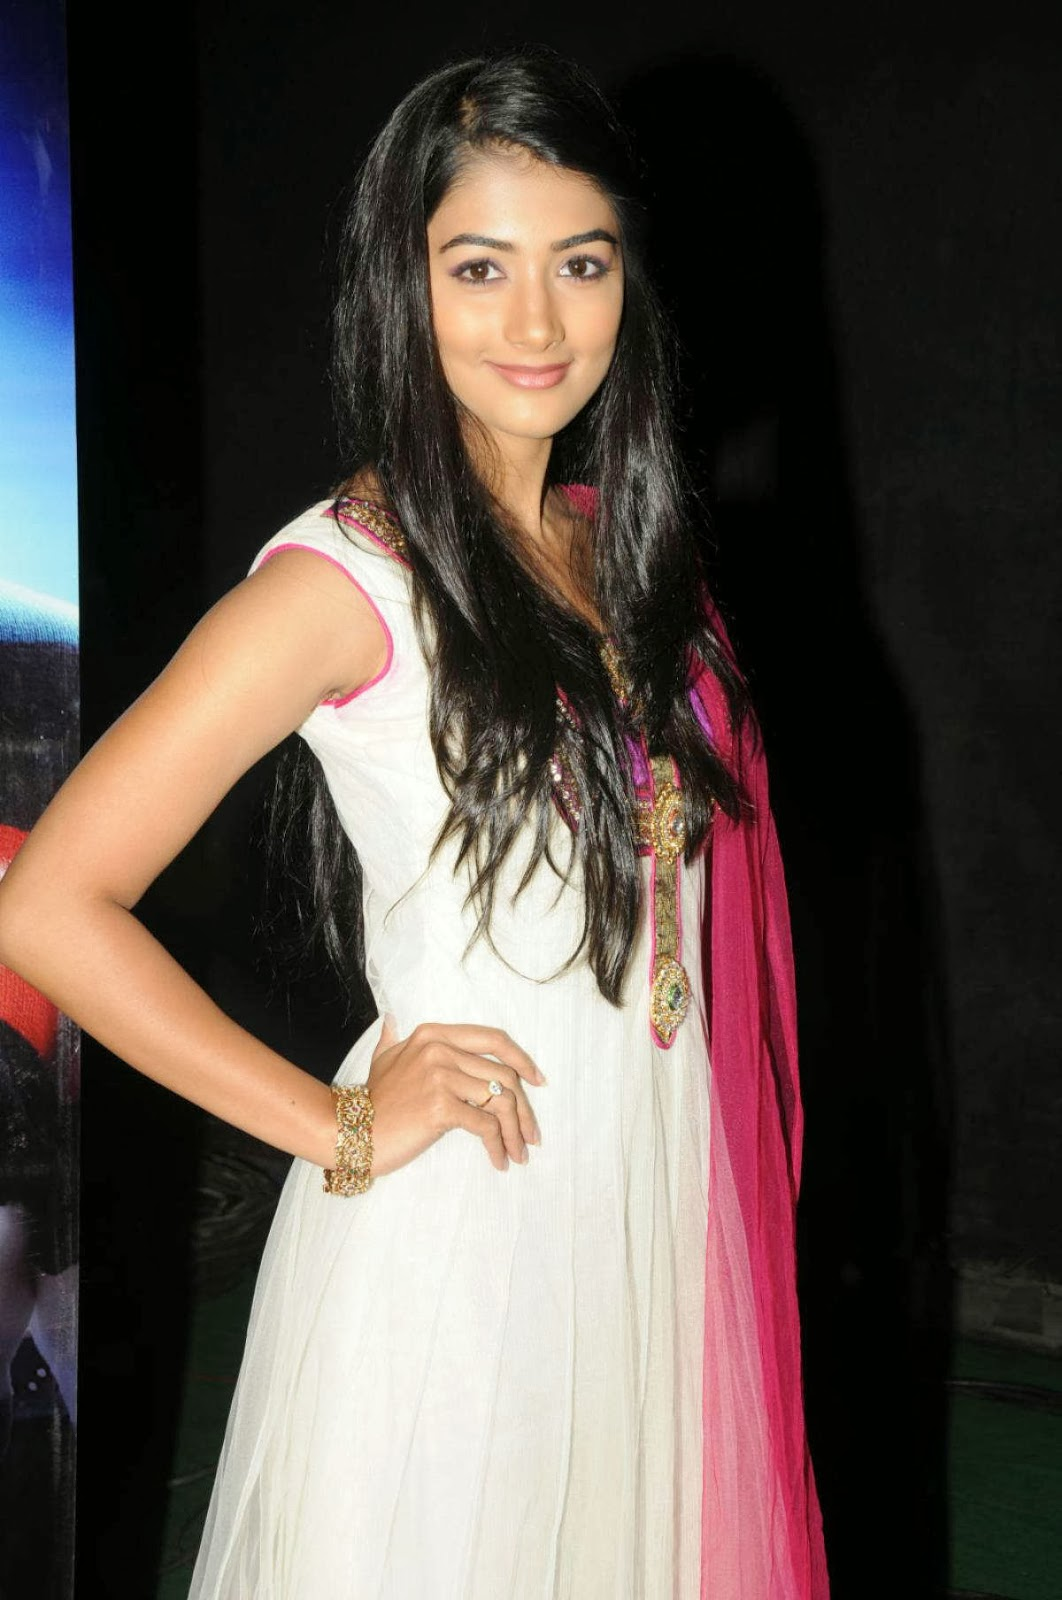 Dj Punjabi Girl Wallpaper Actress Pooja Hegde Latest Photostills